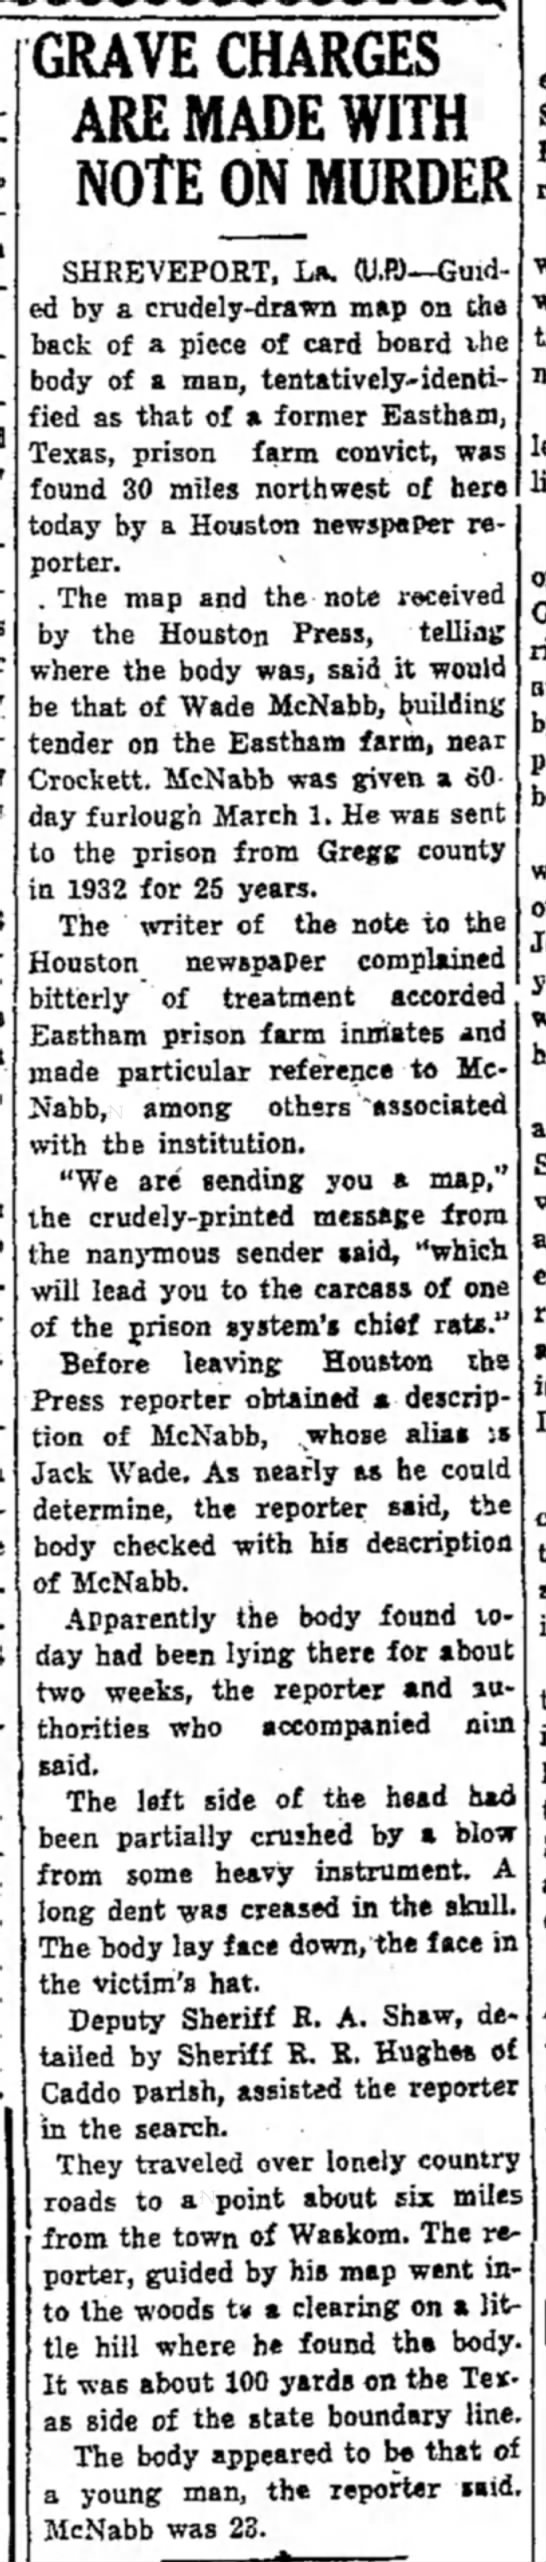 WadeMcNabb_MexiaWeeklyHerald_6Apr1934 - GRAVE CHARGES ARE MADE WITH NOTE ON MURDER...